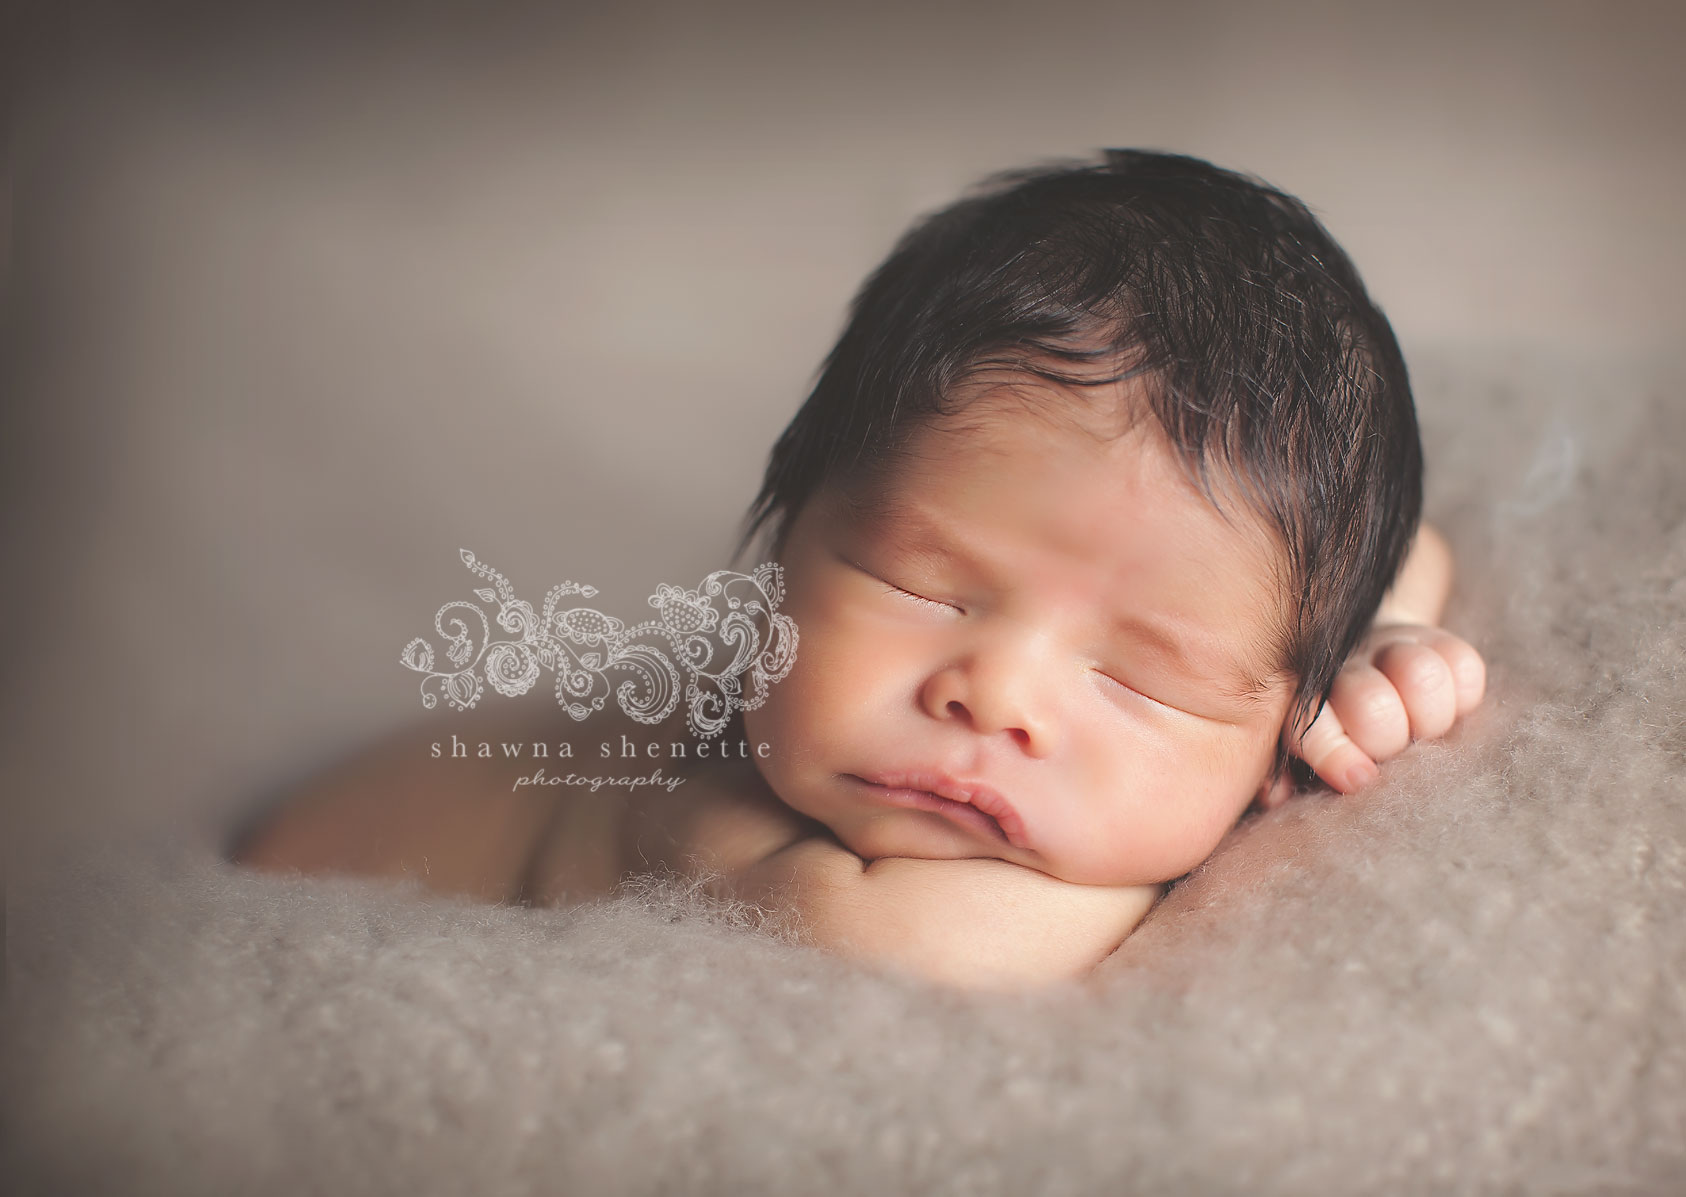 Massachusetts Newborn Boy Photographer Studio Photography Newborn Photos Worcester, MA Millbury MA